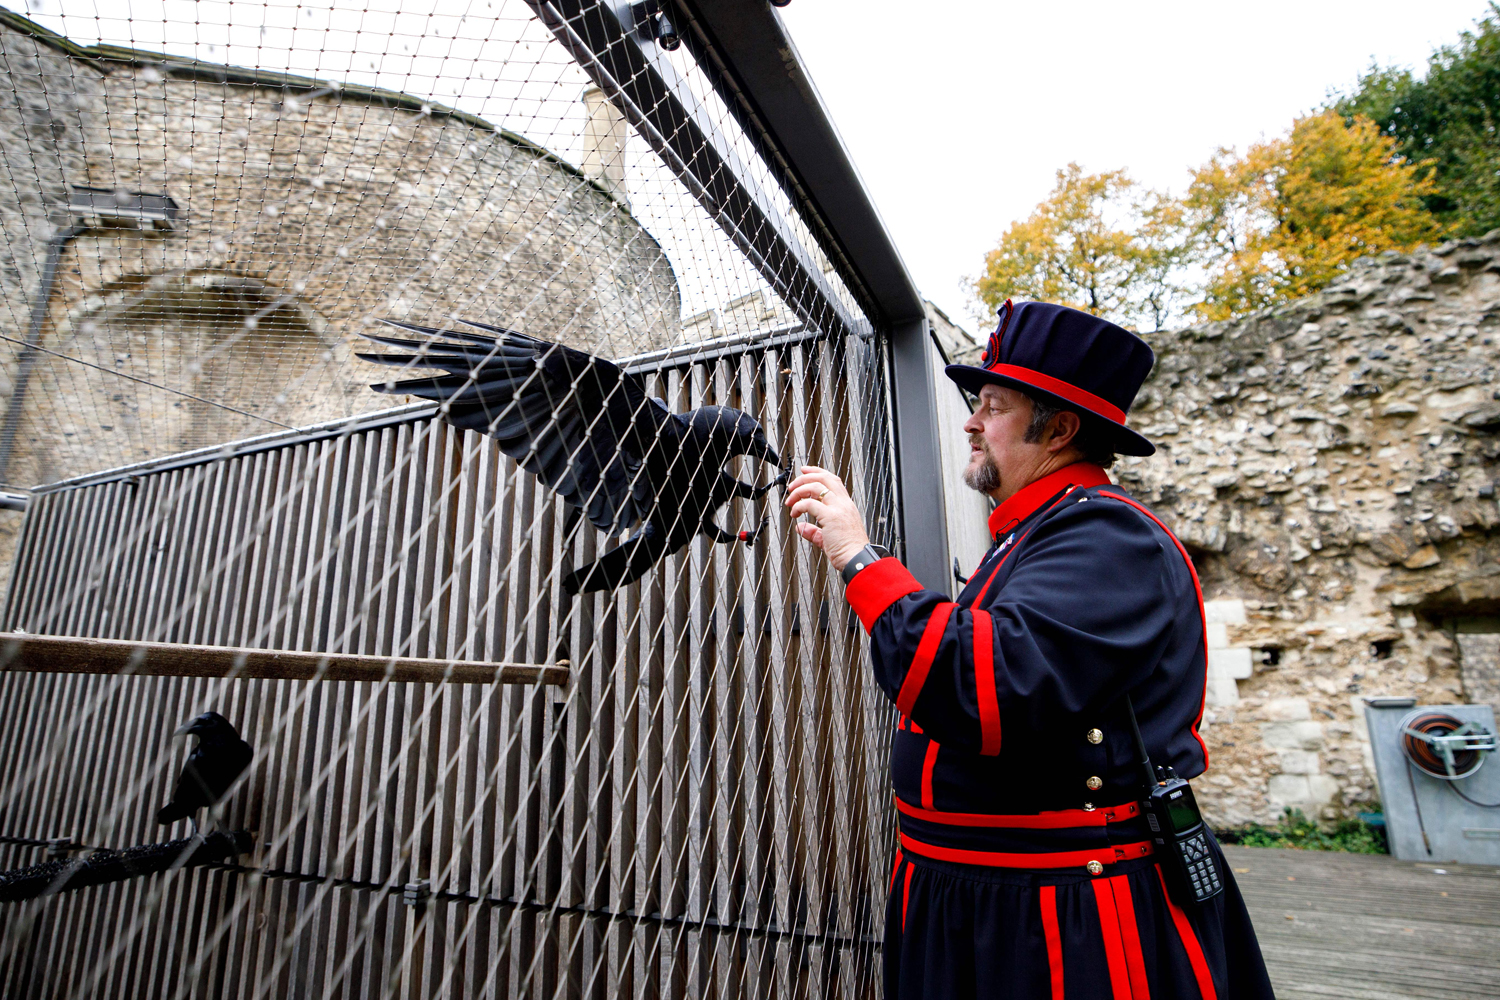 Yeoman Warder Ravenmaster Chris Skaife poses with a raven at the Tower of London